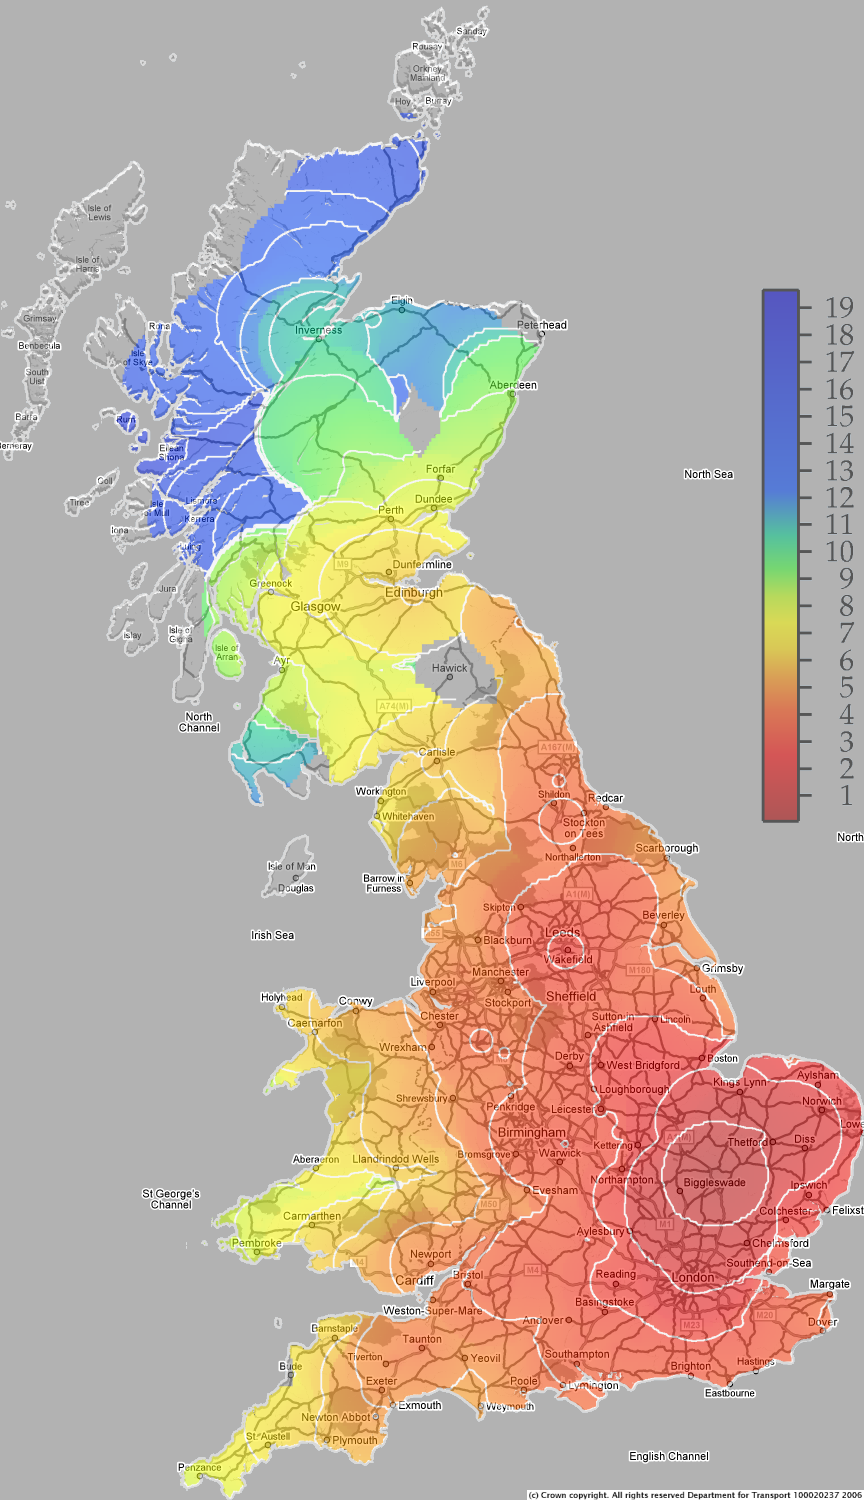 map showing travel times by rail and taxi from cambridge to other points in great britain